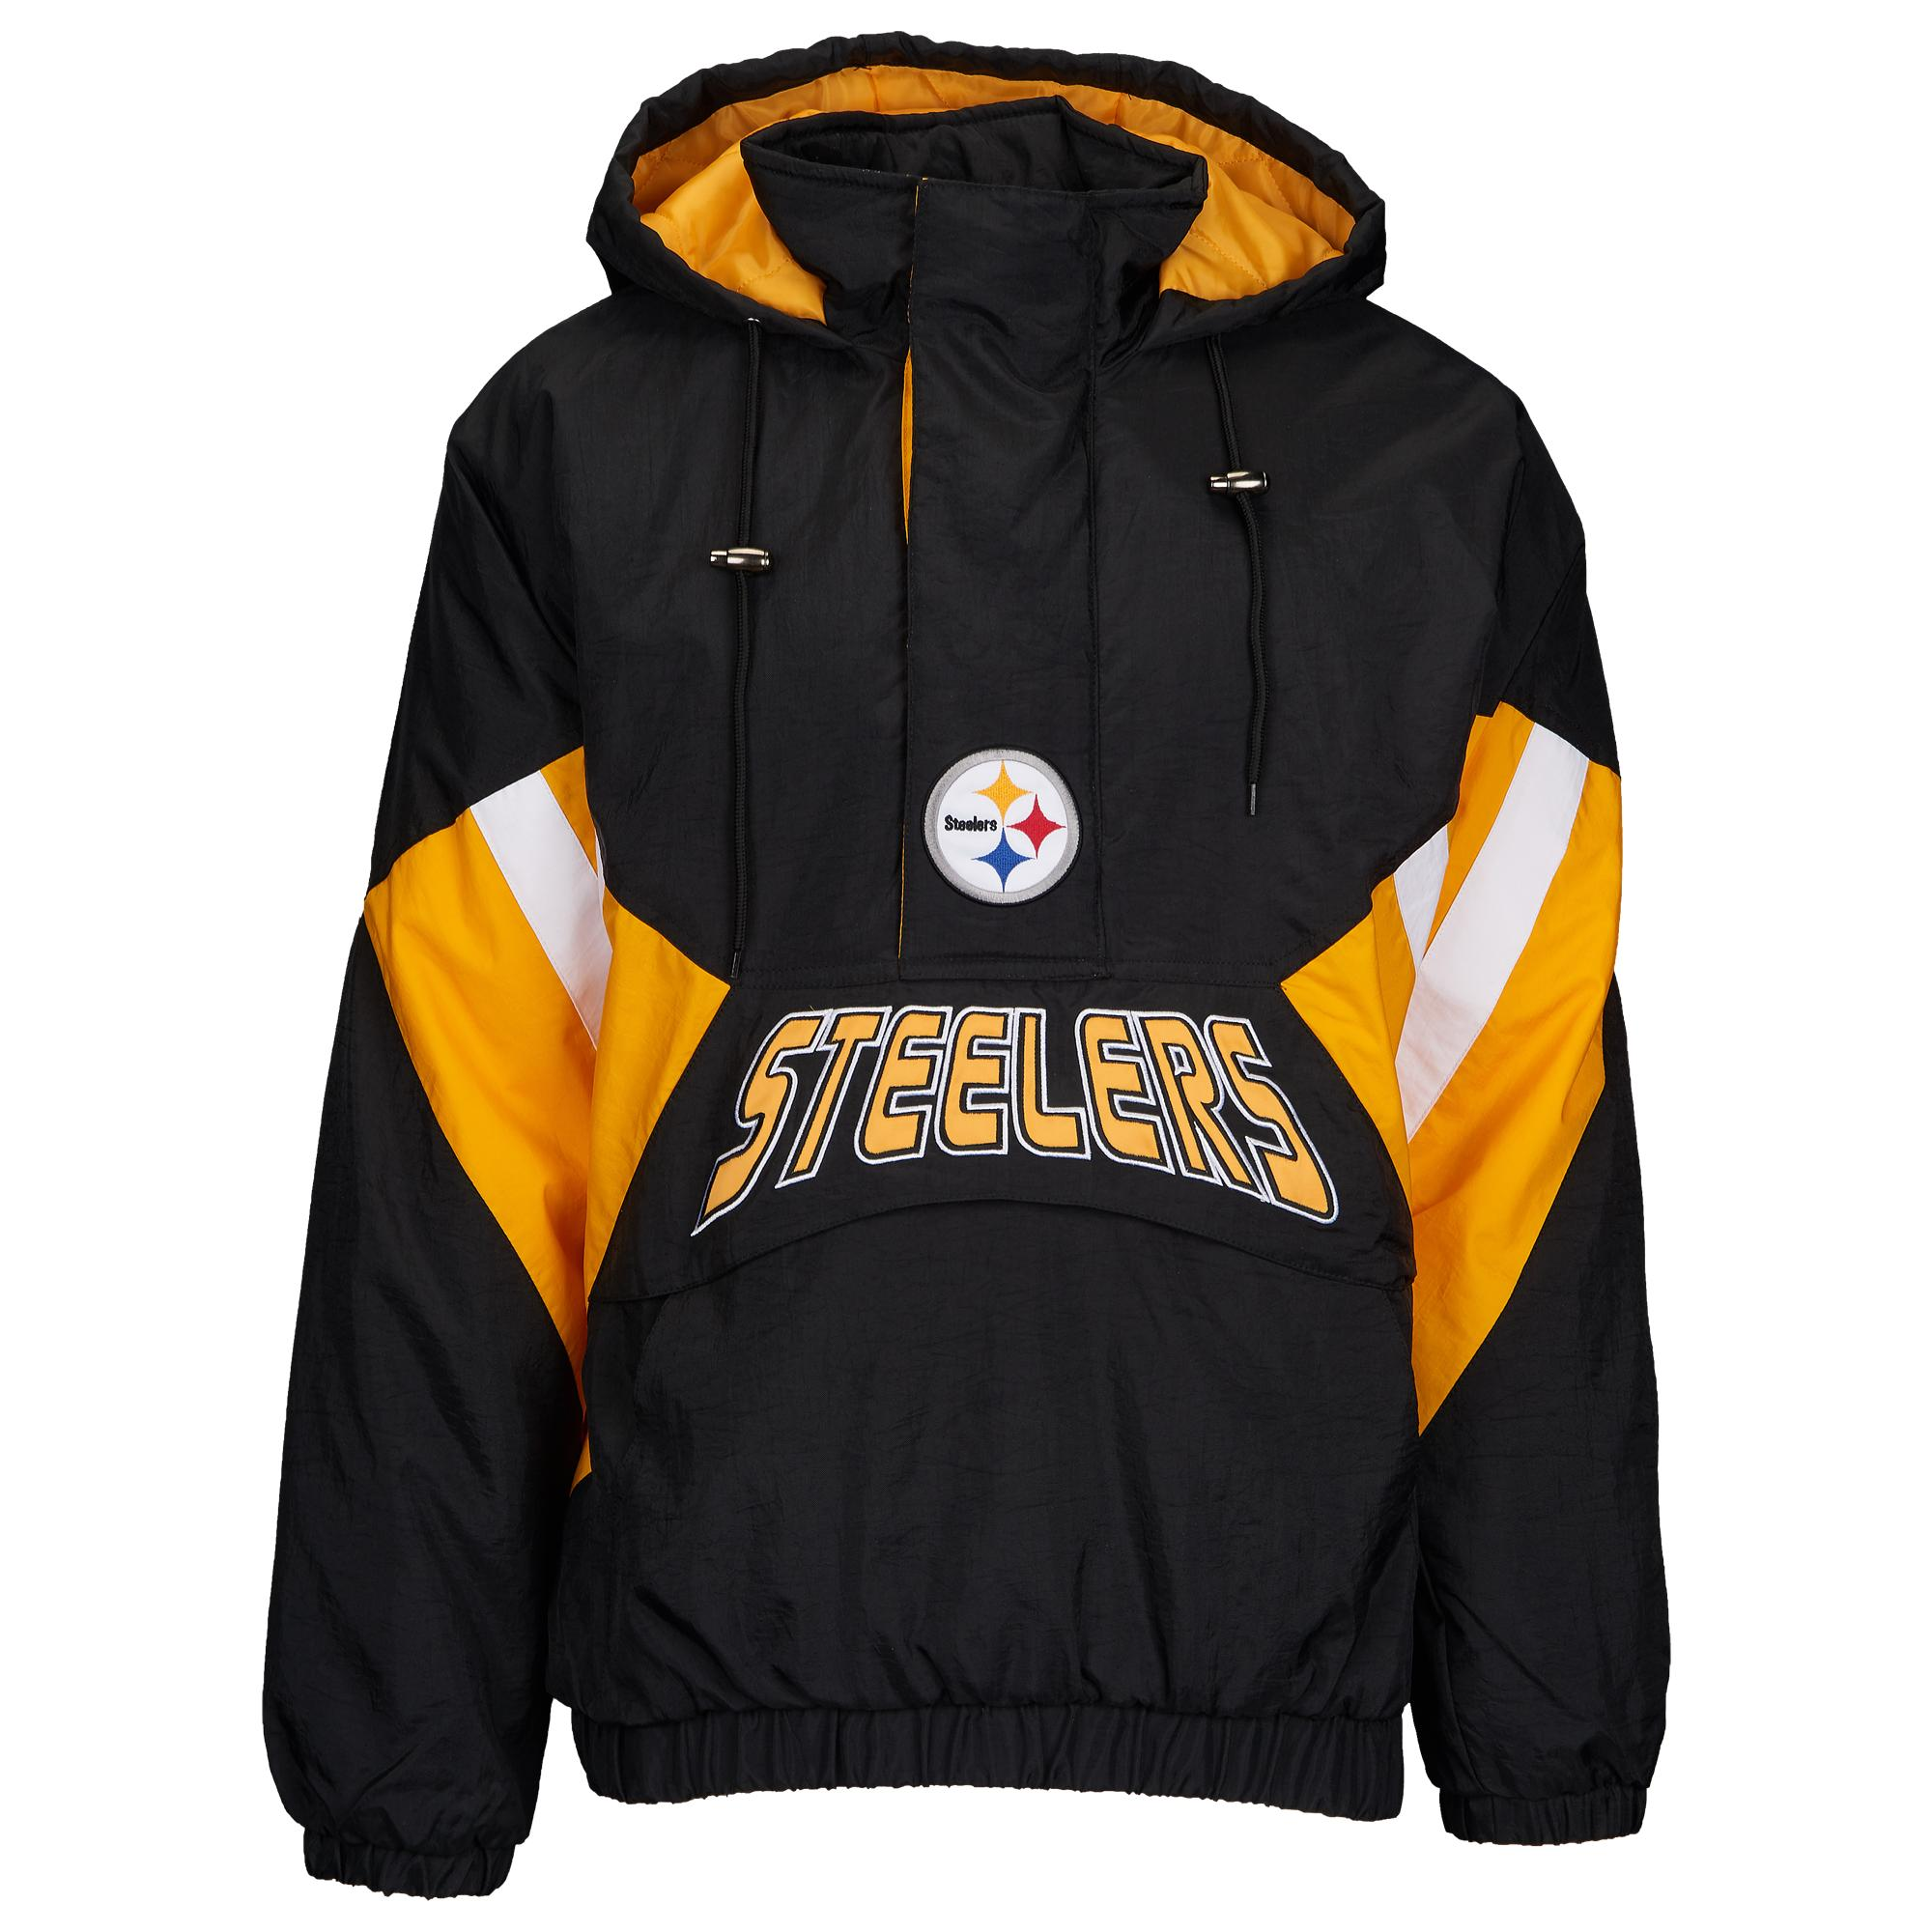 new arrival 0551f 5c4be Men's Black Pittsburgh Steelers Nfl 1/2 Zip Hooded Pullover Jacket